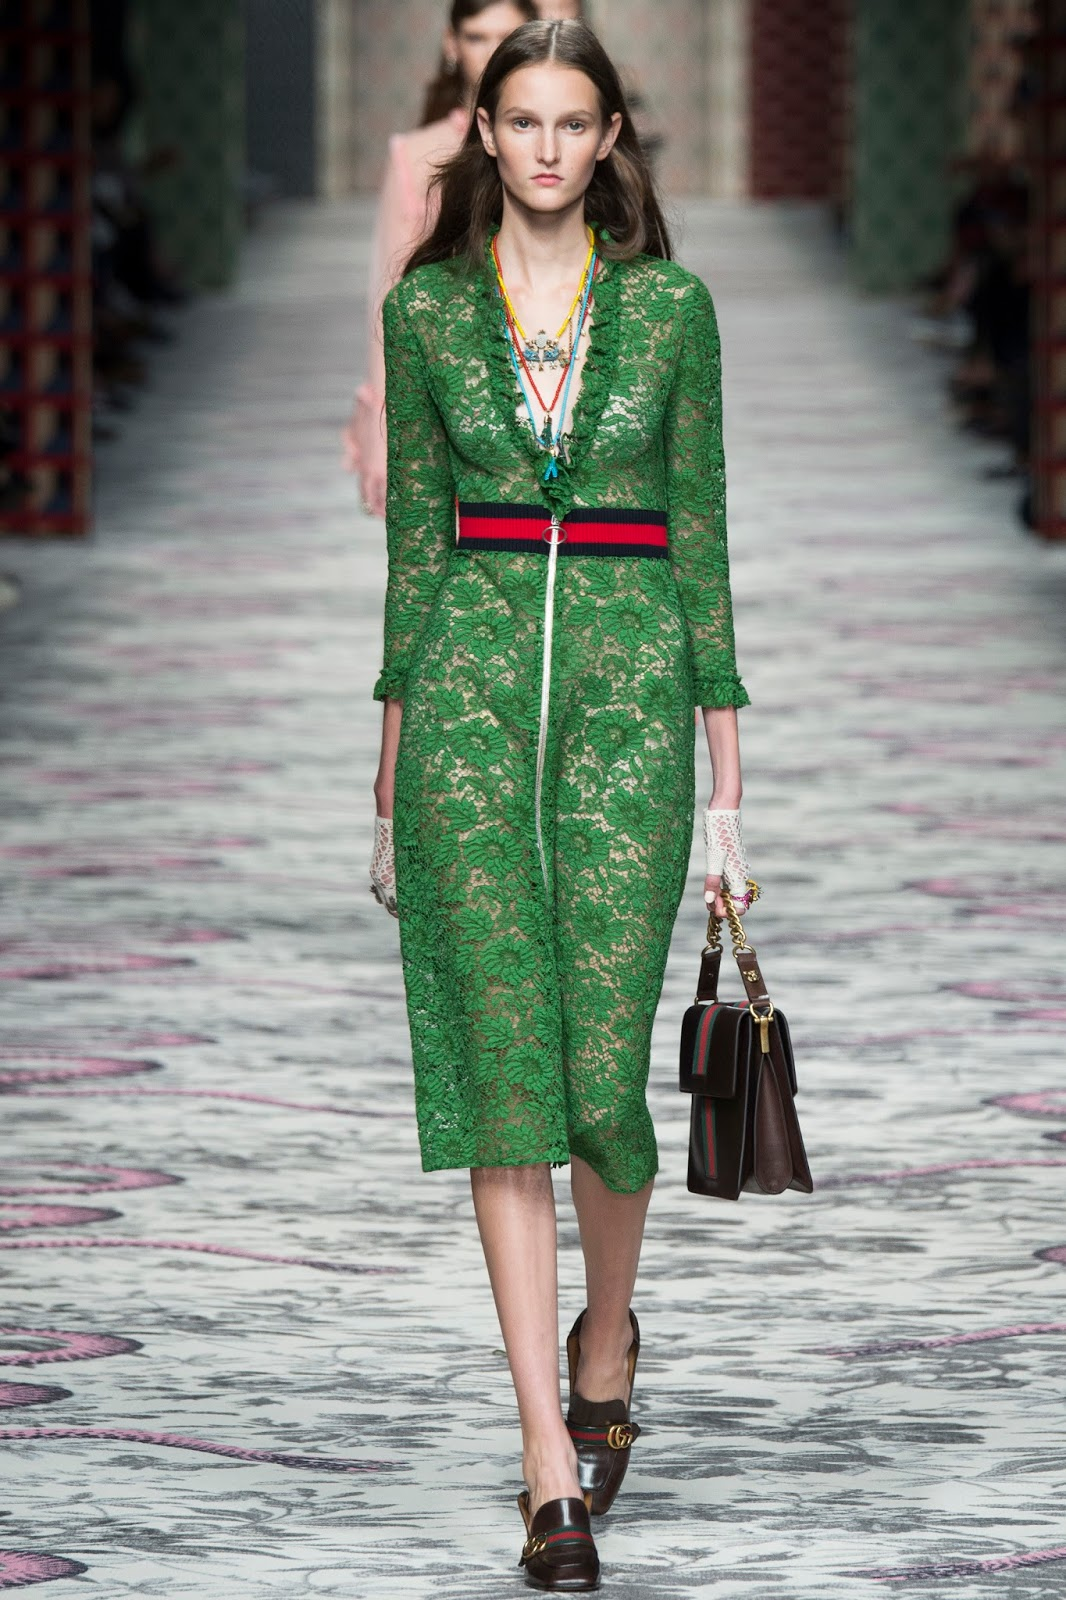 Pantone colour report & spring summer 2016 fashion trends / green flash at Gucci Spring/Summer 2016 via www.fashionedbylove.co.uk British fashion & style blog